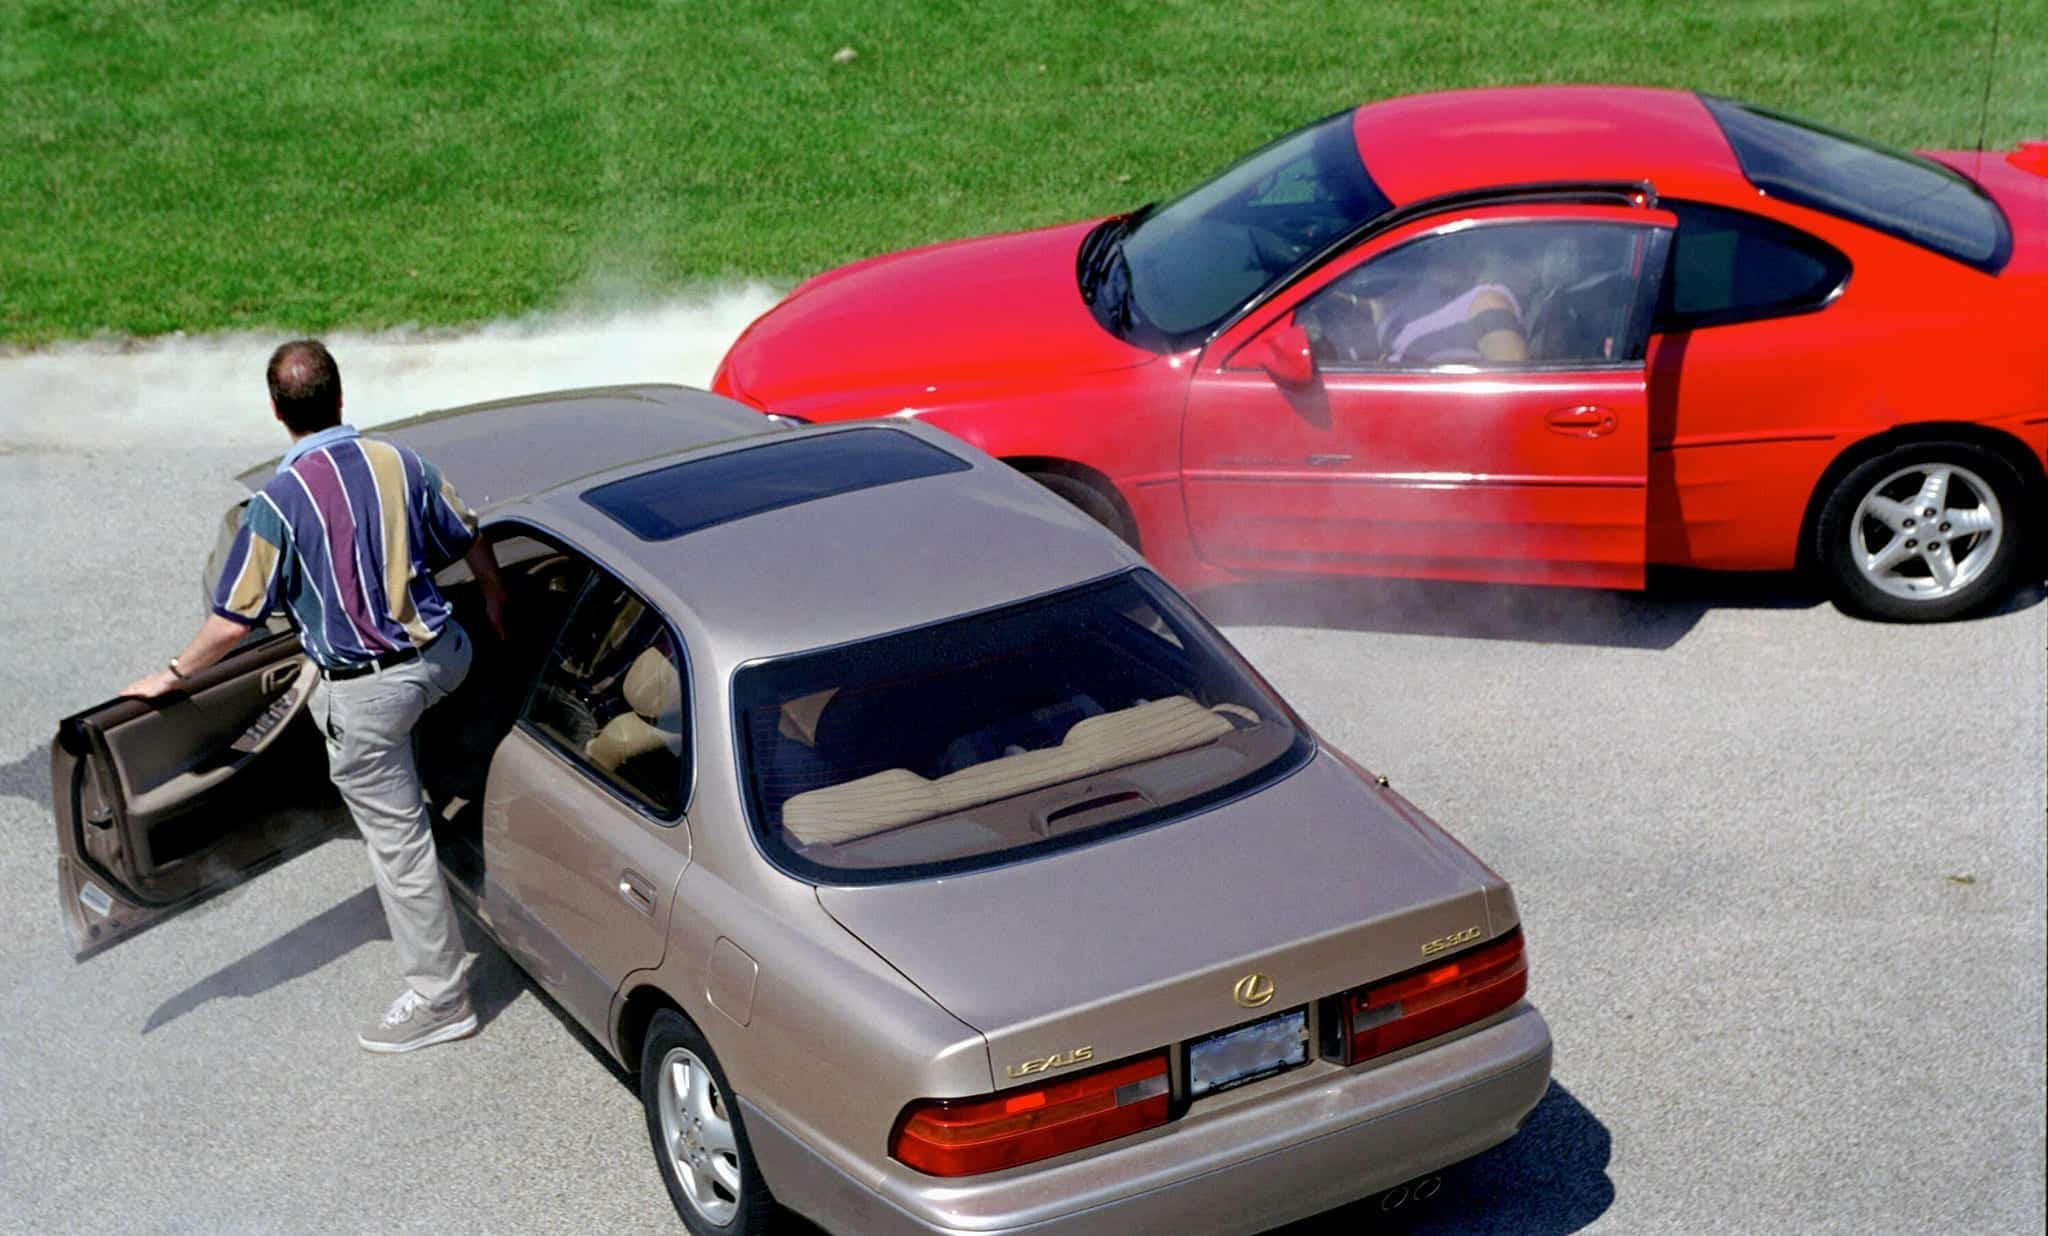 Two-car accident; image courtesy of State Farm, via Flickr, CC BY 2.0, no changes made.